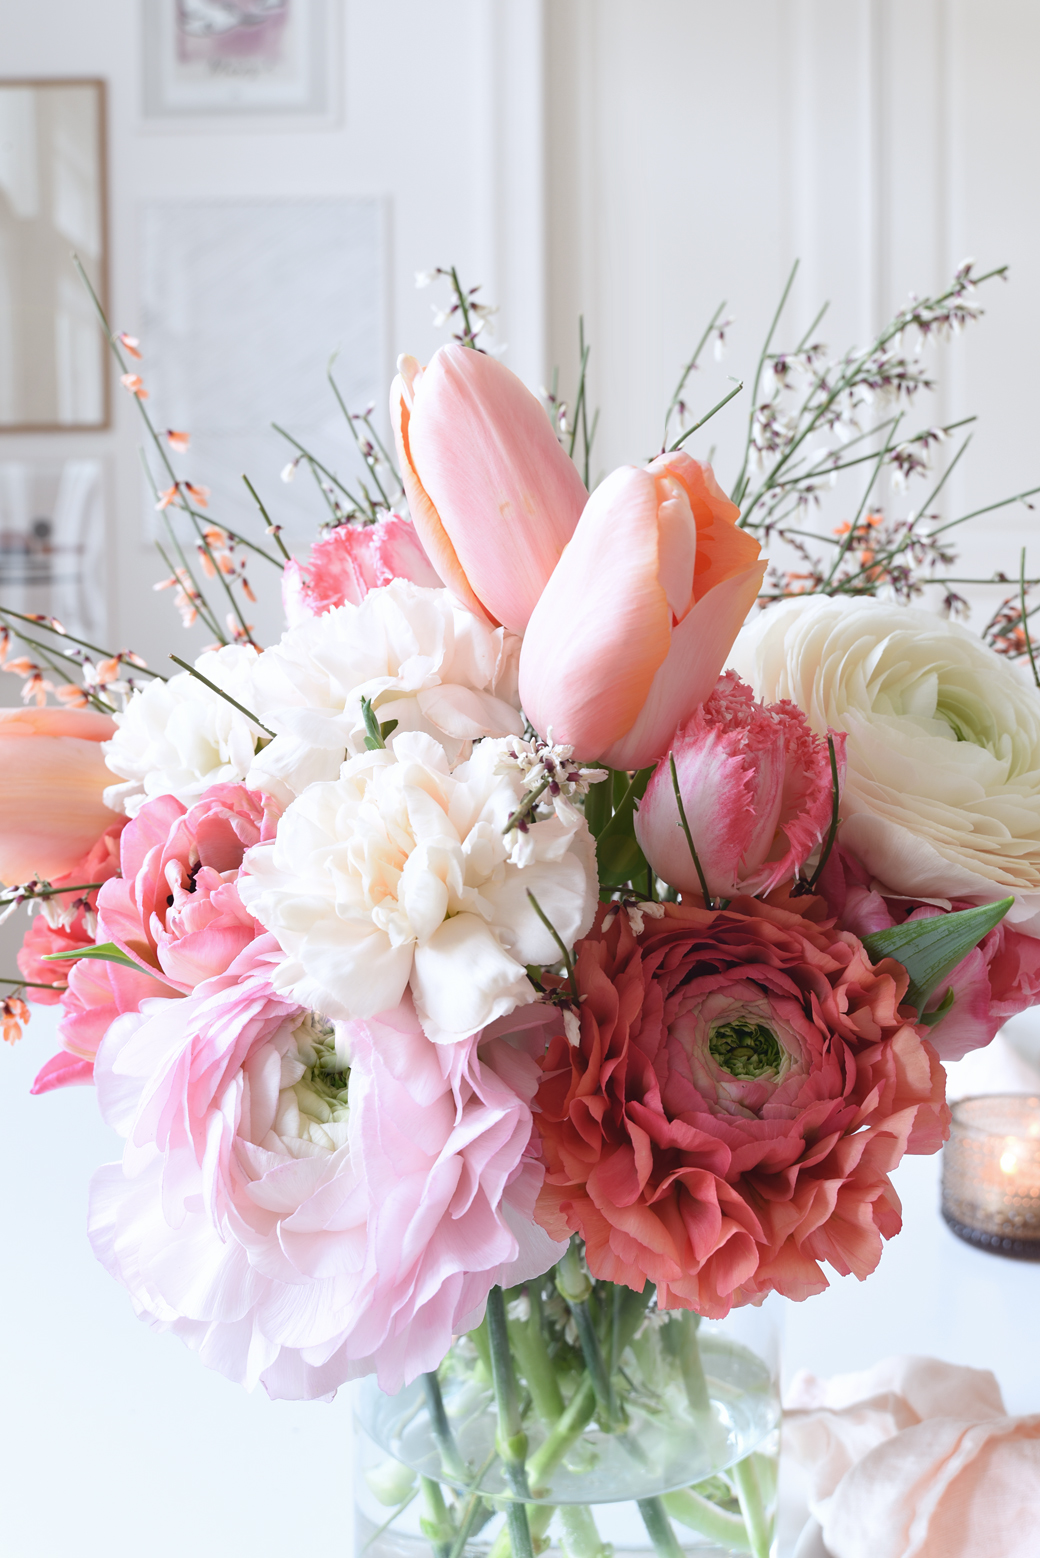 March Dinner Party Inspiration In Blush Pink Linen + Fresh Flowers